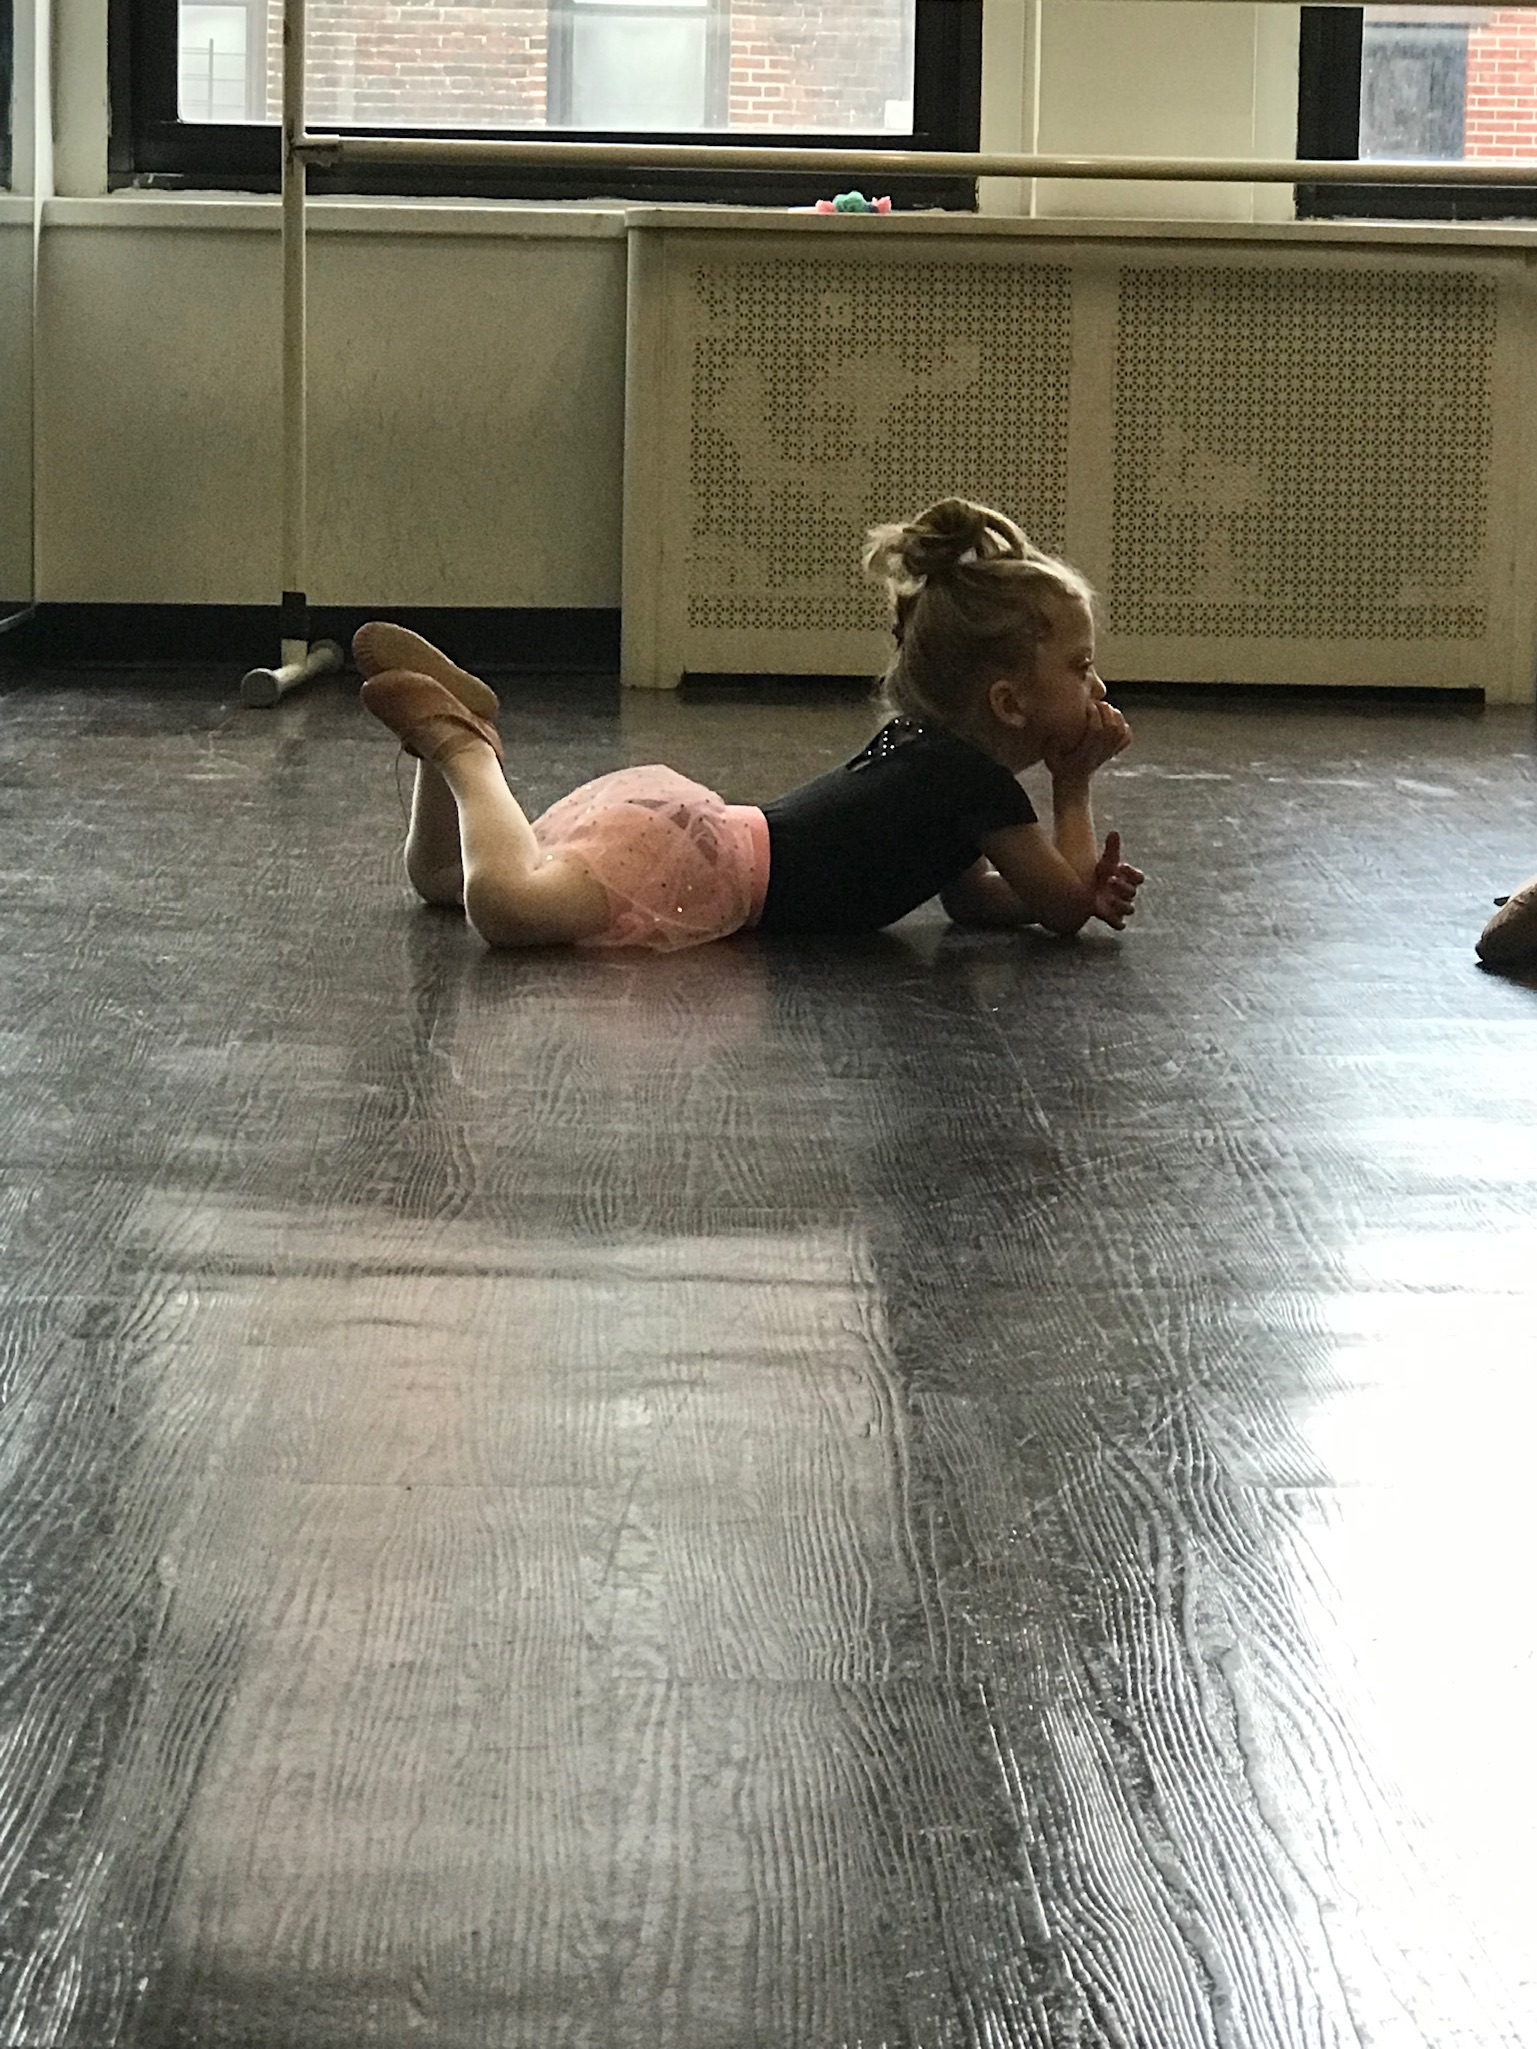 The highlight of our week, which lifts us up no matter how hard the days have been, is getting to watch this little one LOVING her ballet class.